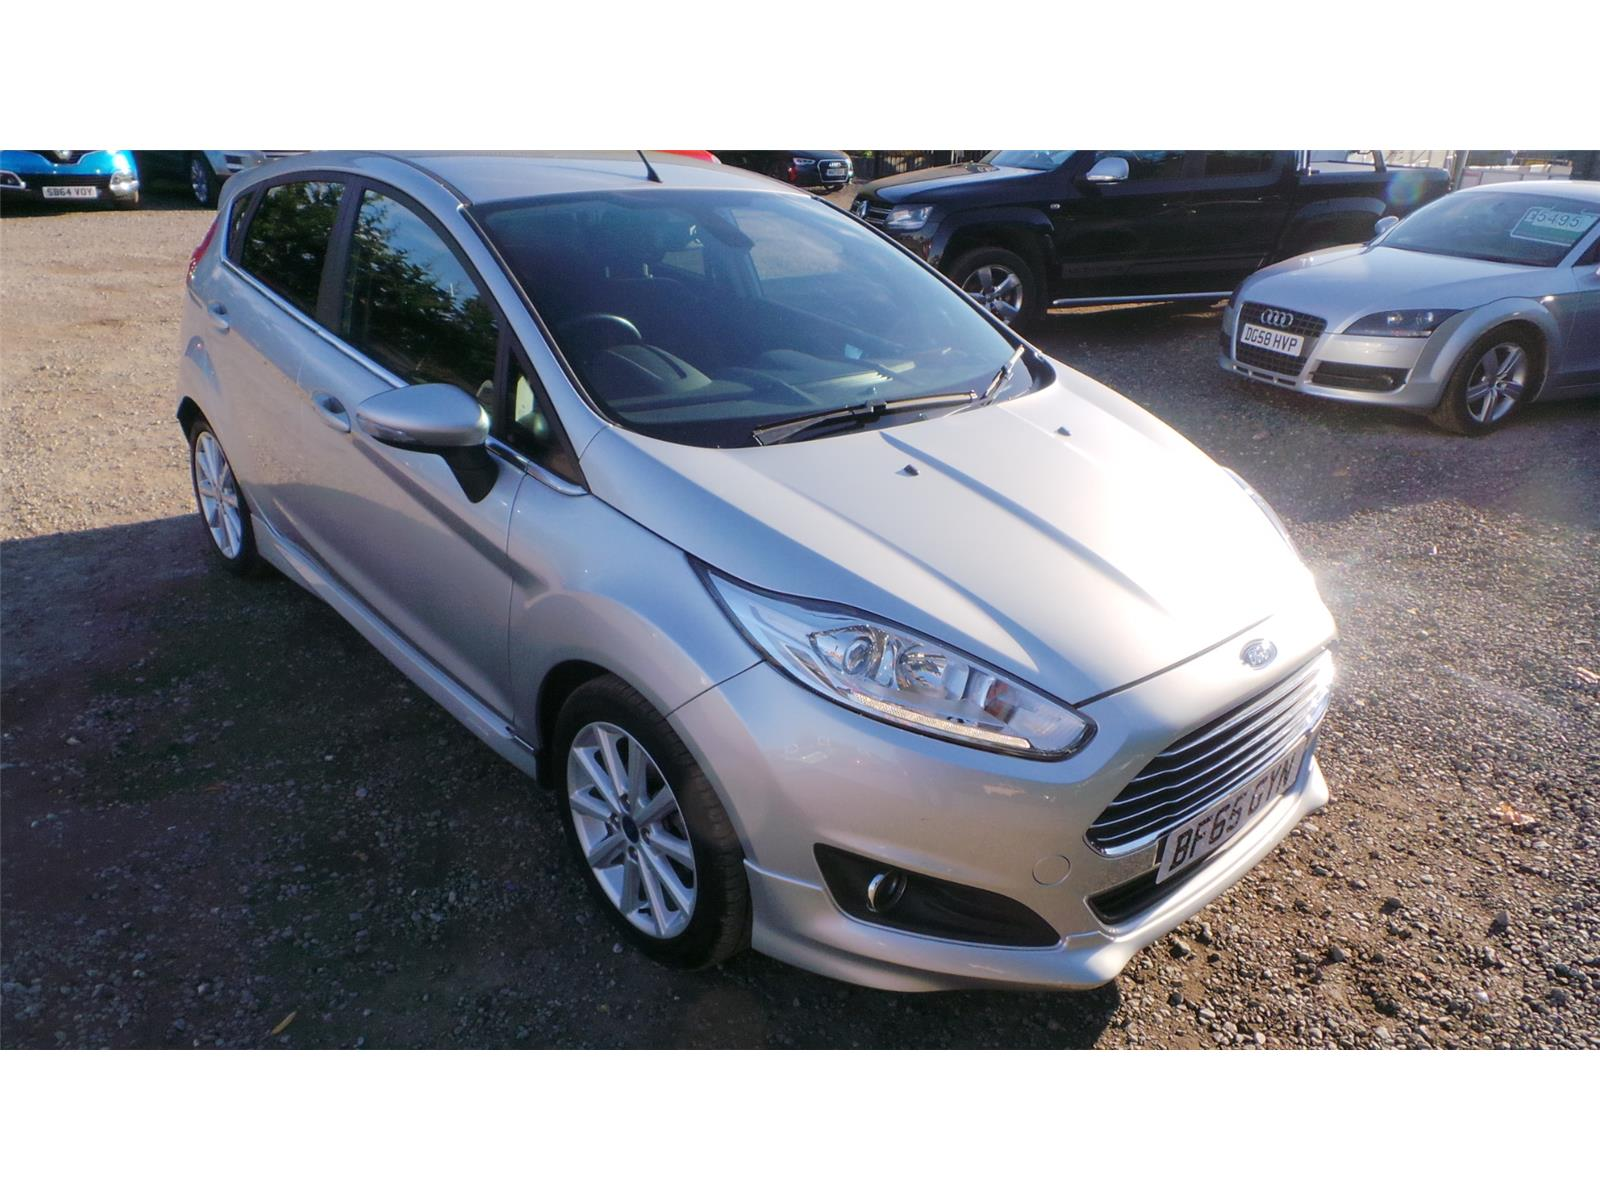 2015 Ford Fiesta Titanium 998 Petrol Manual 5 Speed 5 Door Hatchback